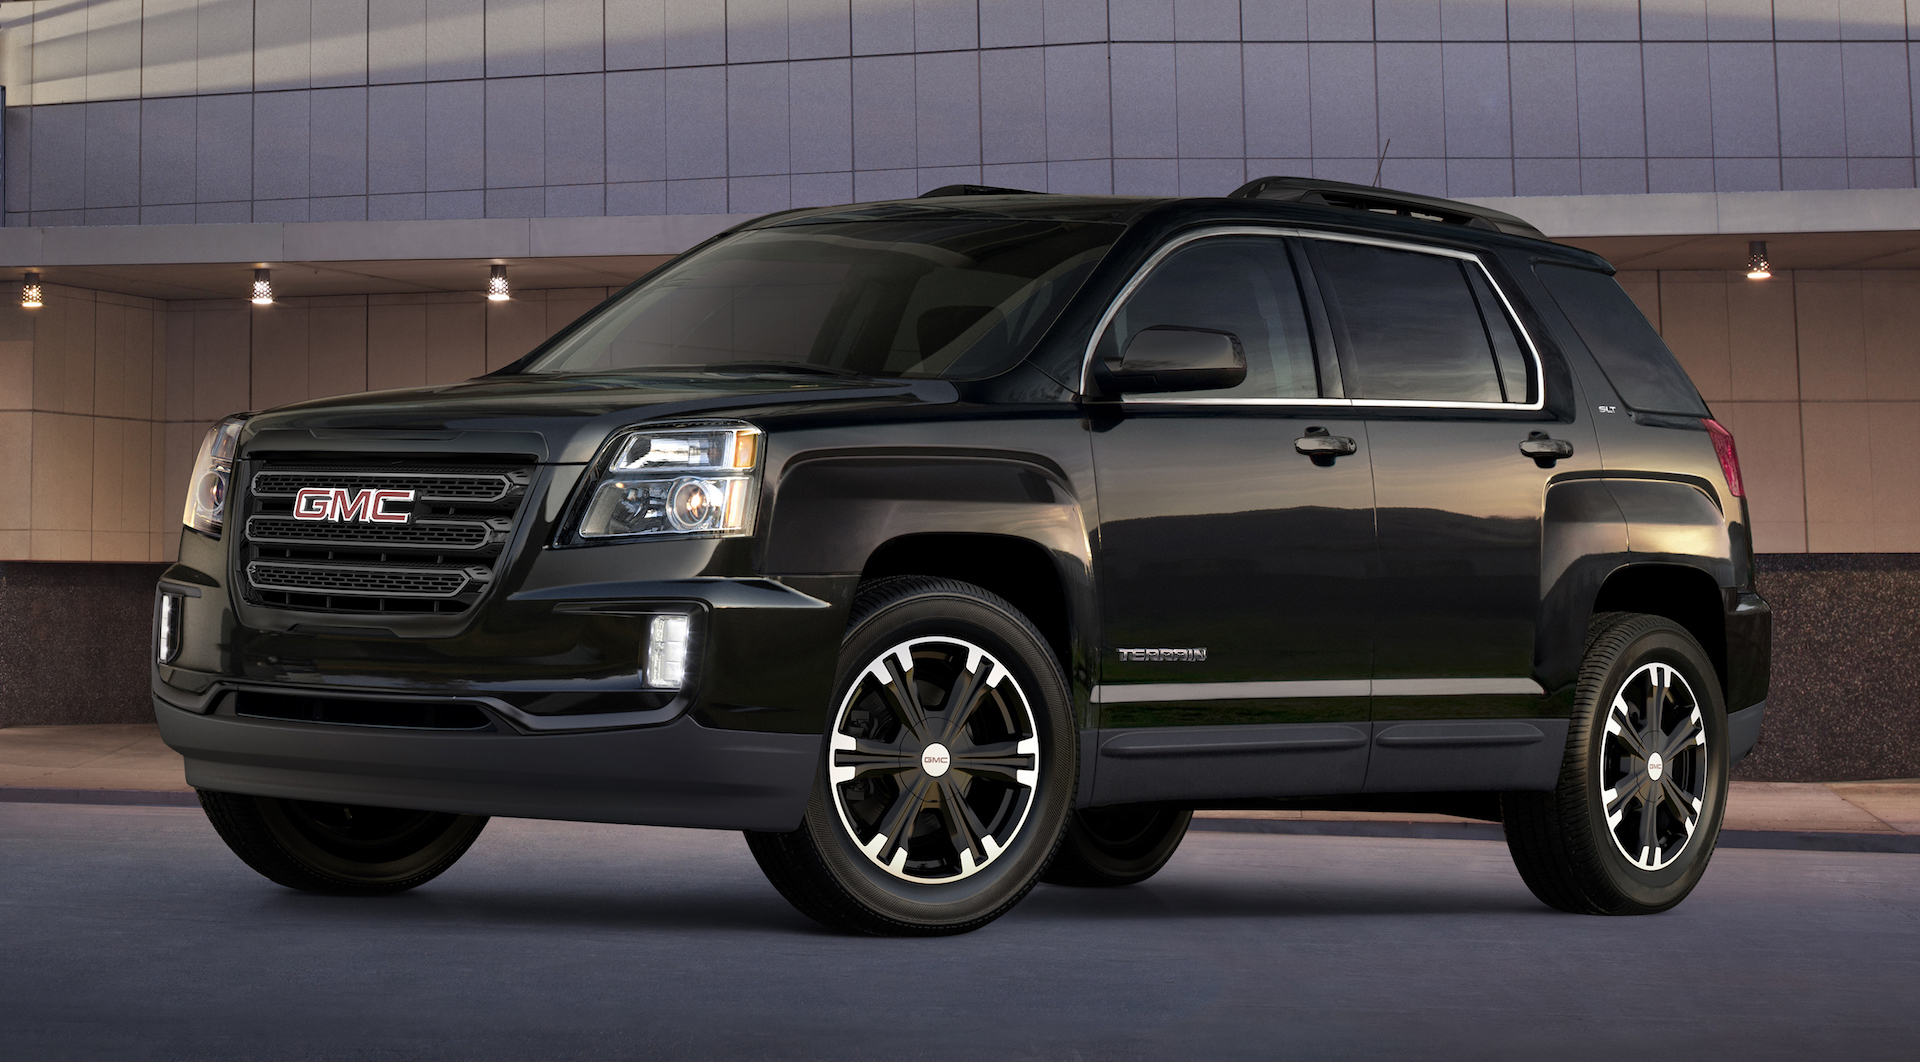 2017 Gmc Terrain Styling Review The Car Connection